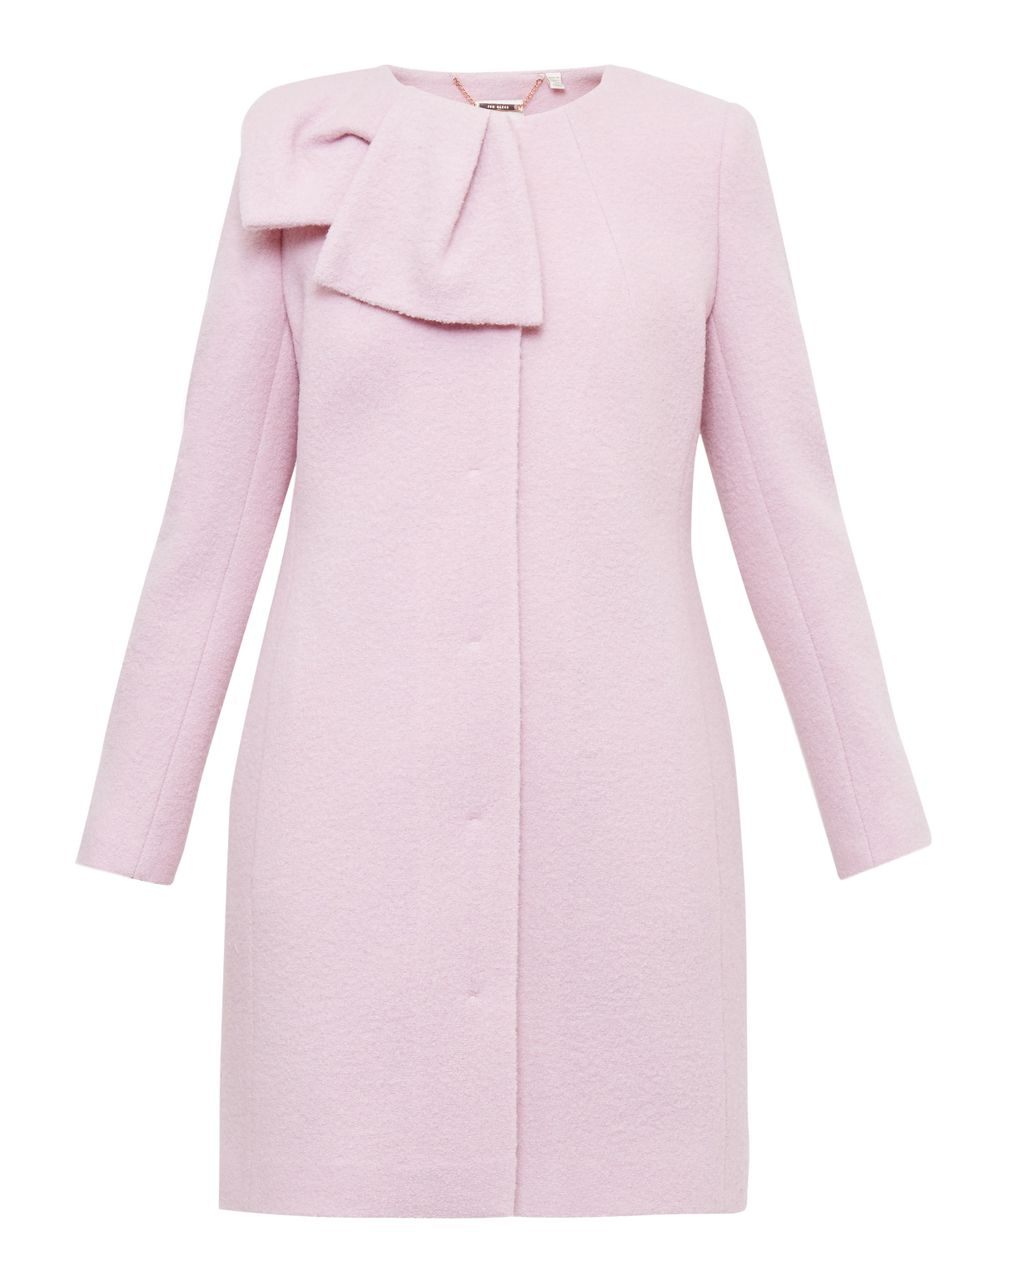 Ellmida Boiled Wool Coat, Blush - pattern: plain; length: below the bottom; bust detail: added detail/embellishment at bust; collar: round collar/collarless; style: single breasted; predominant colour: blush; occasions: casual; fit: tailored/fitted; fibres: wool - 100%; sleeve length: long sleeve; sleeve style: standard; collar break: high; pattern type: fabric; texture group: woven bulky/heavy; embellishment: bow; season: a/w 2016; wardrobe: highlight